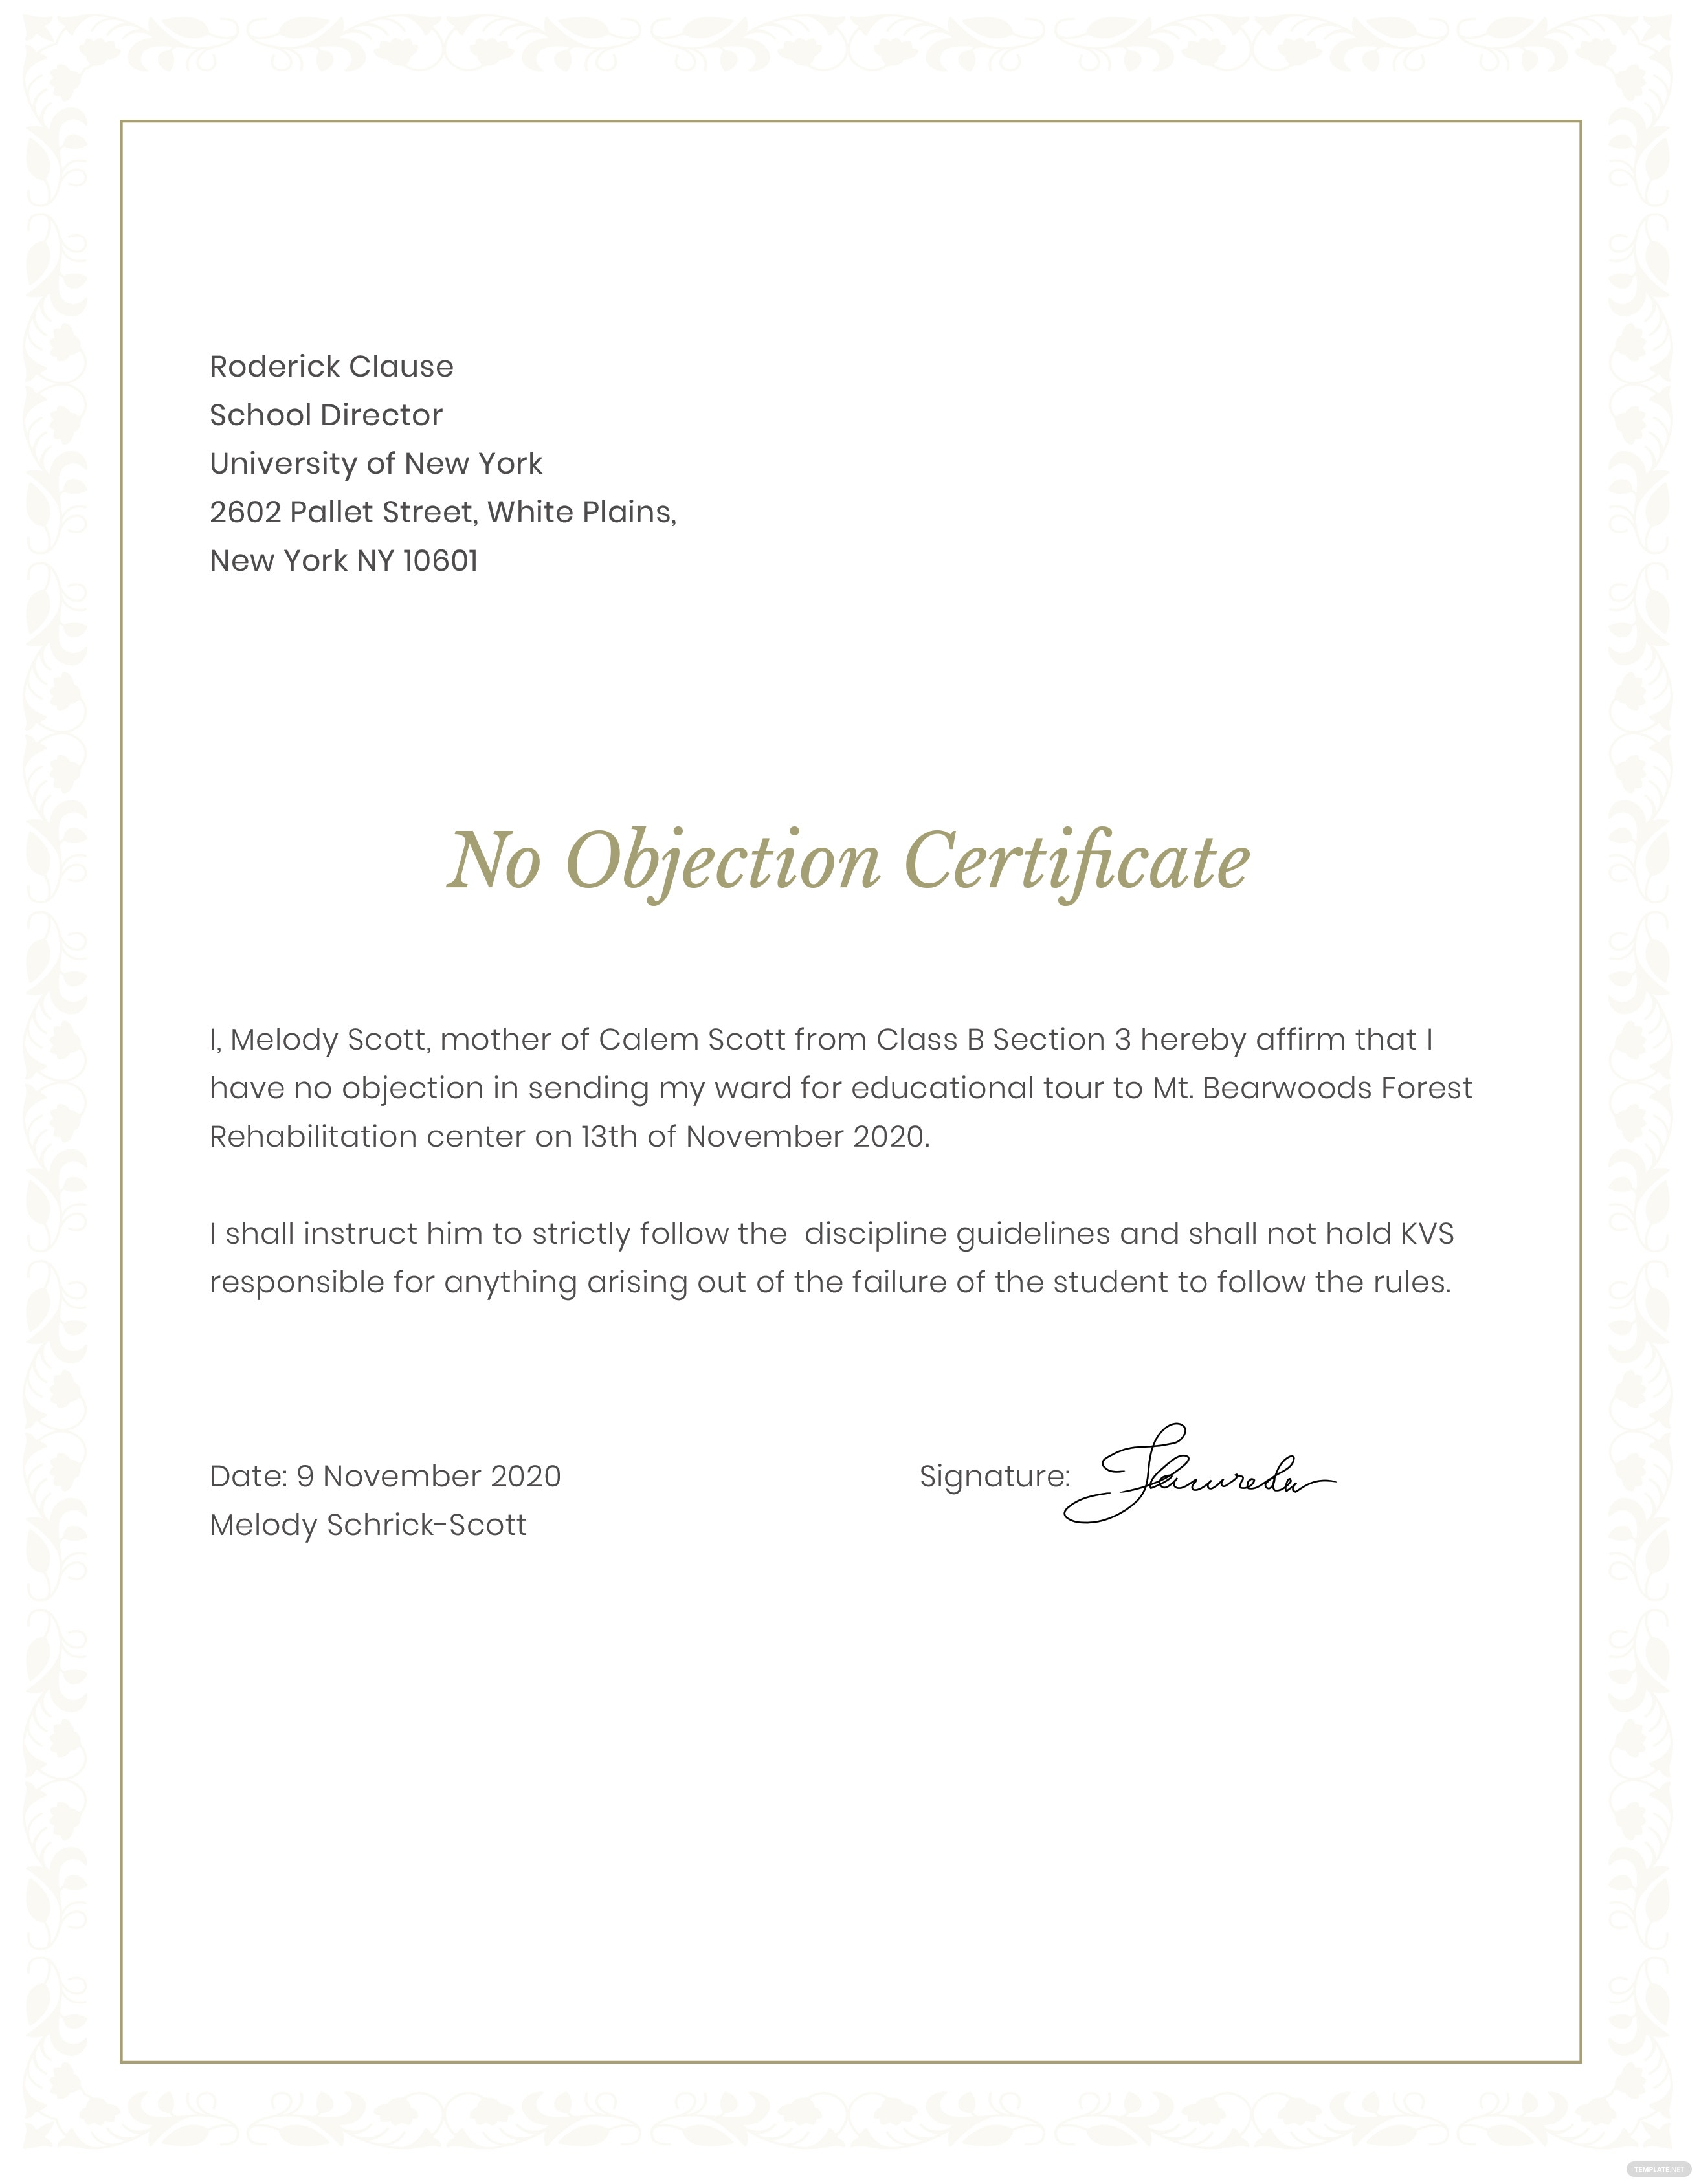 no objection certificate for student template in adobe photoshop  illustrator  indesign